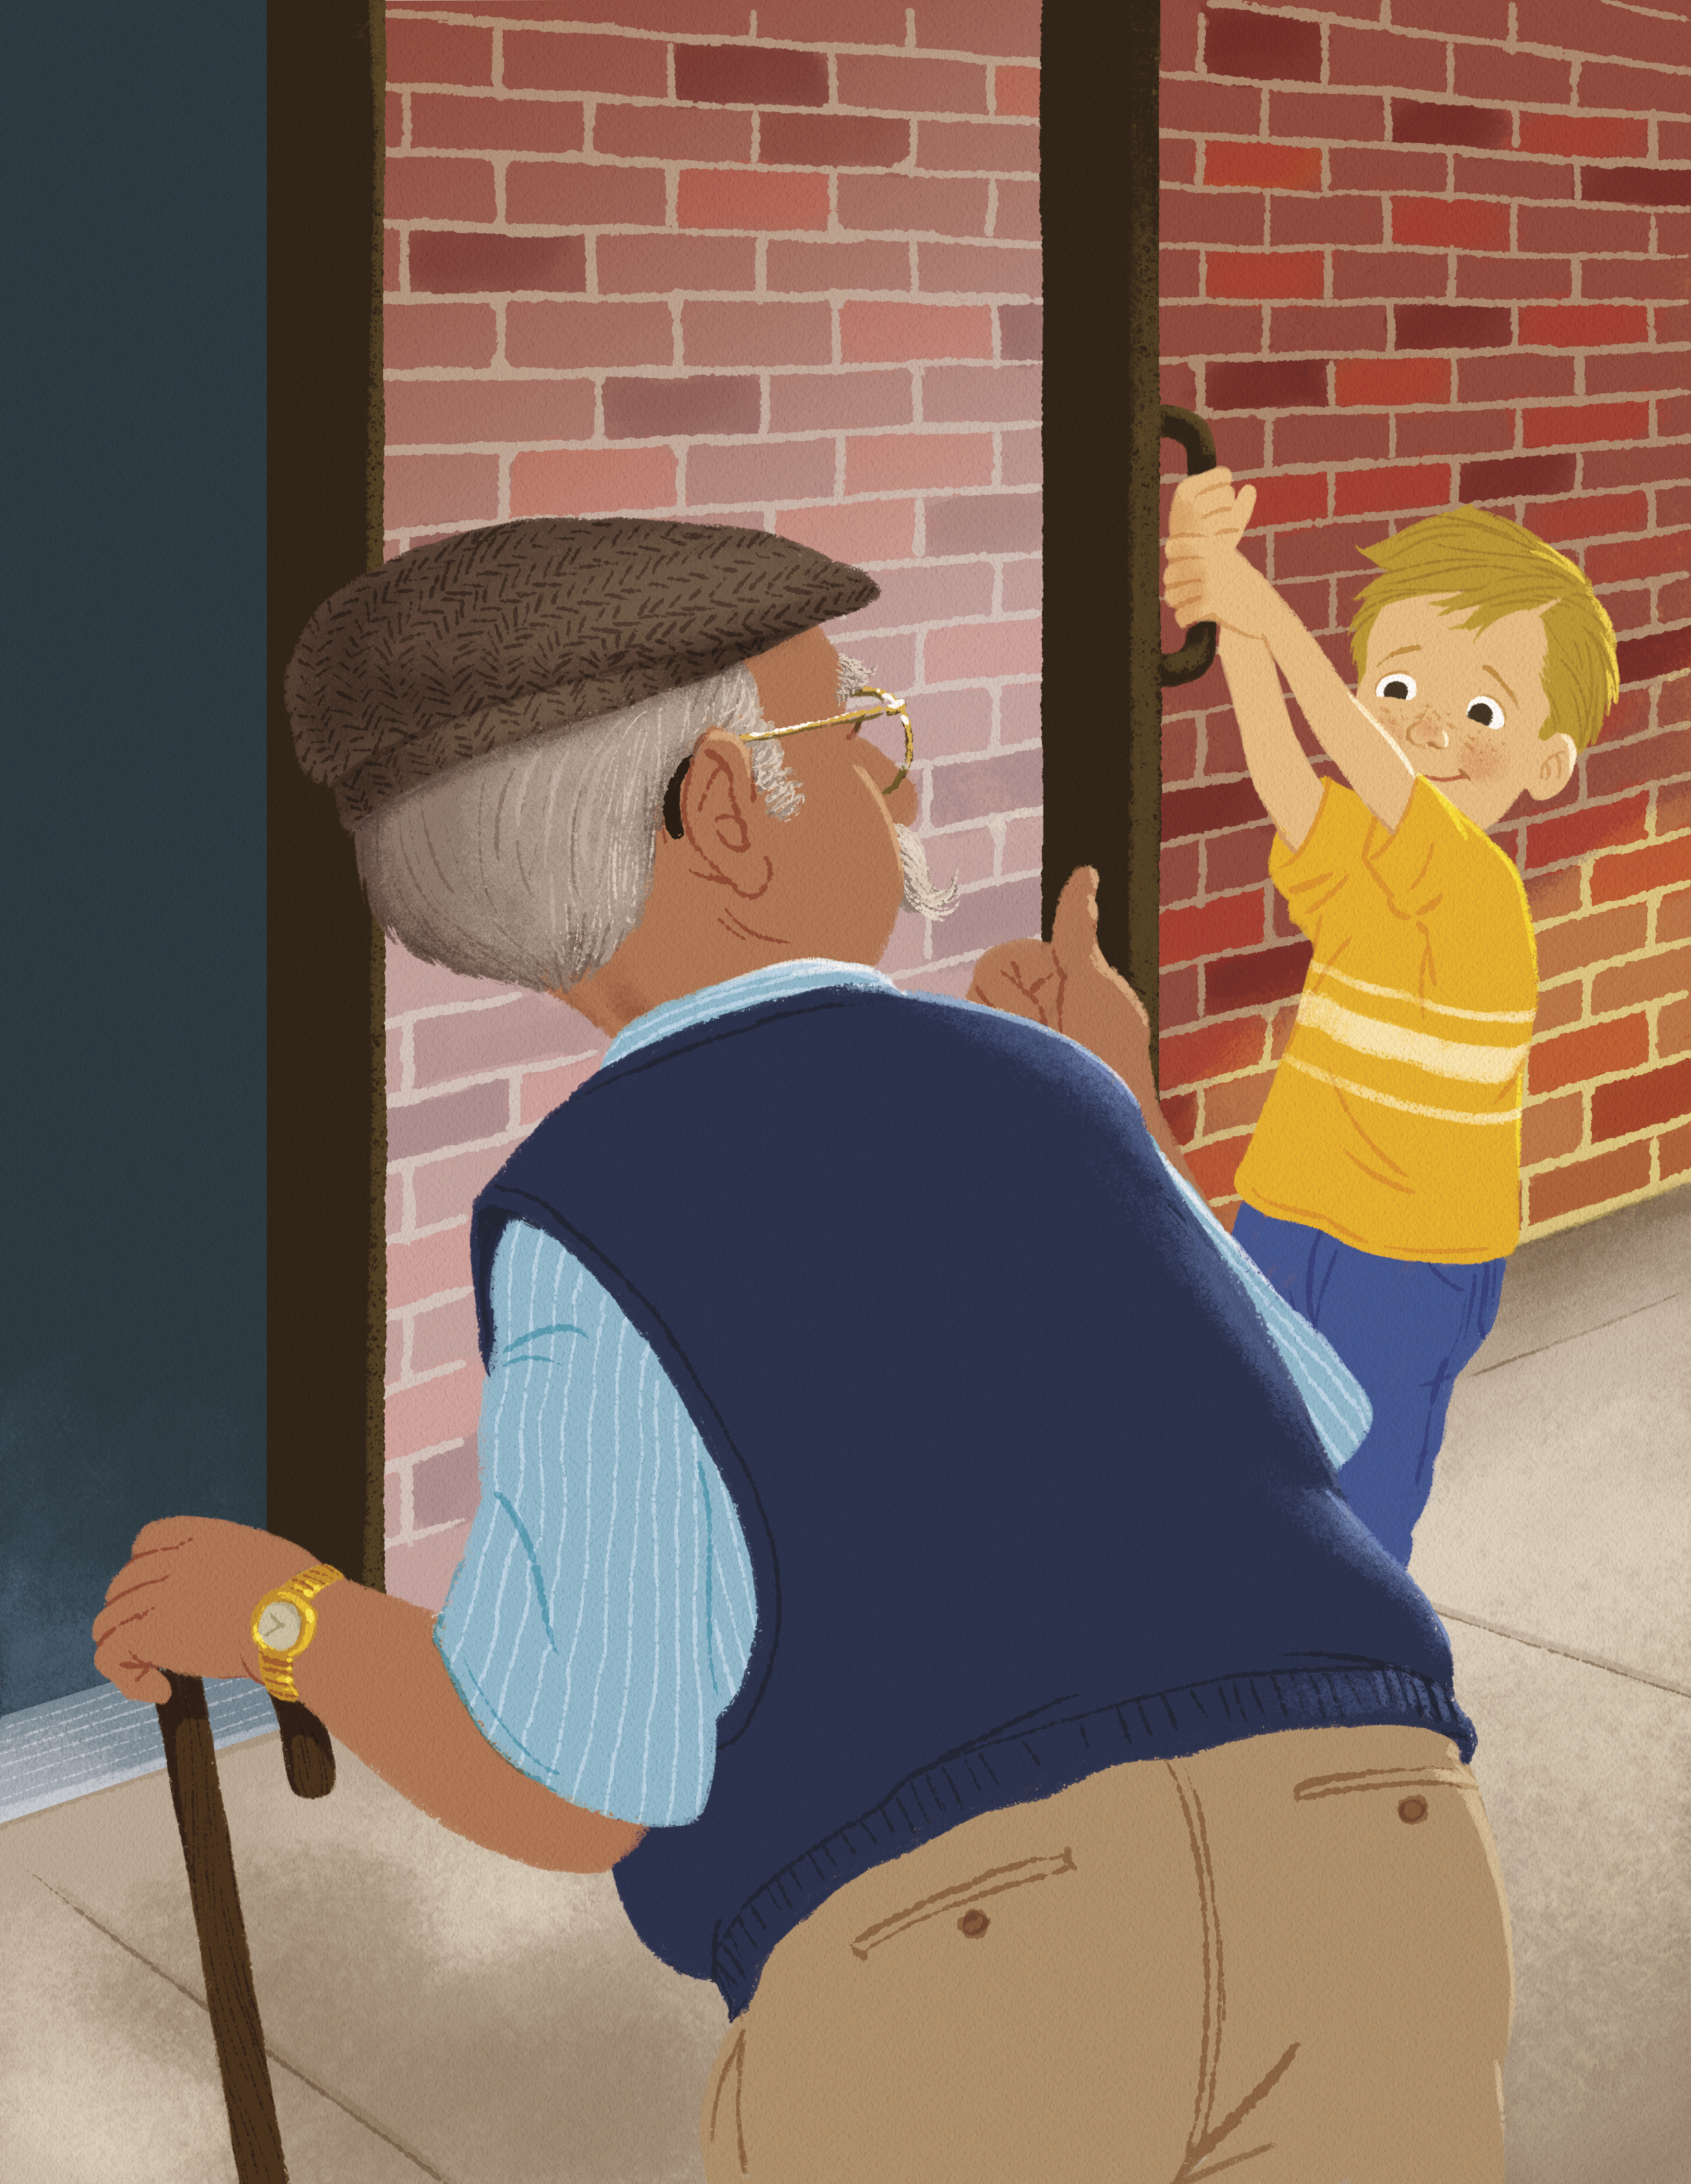 A little boy holds open a door for an elderly man, who is walking with a cane.